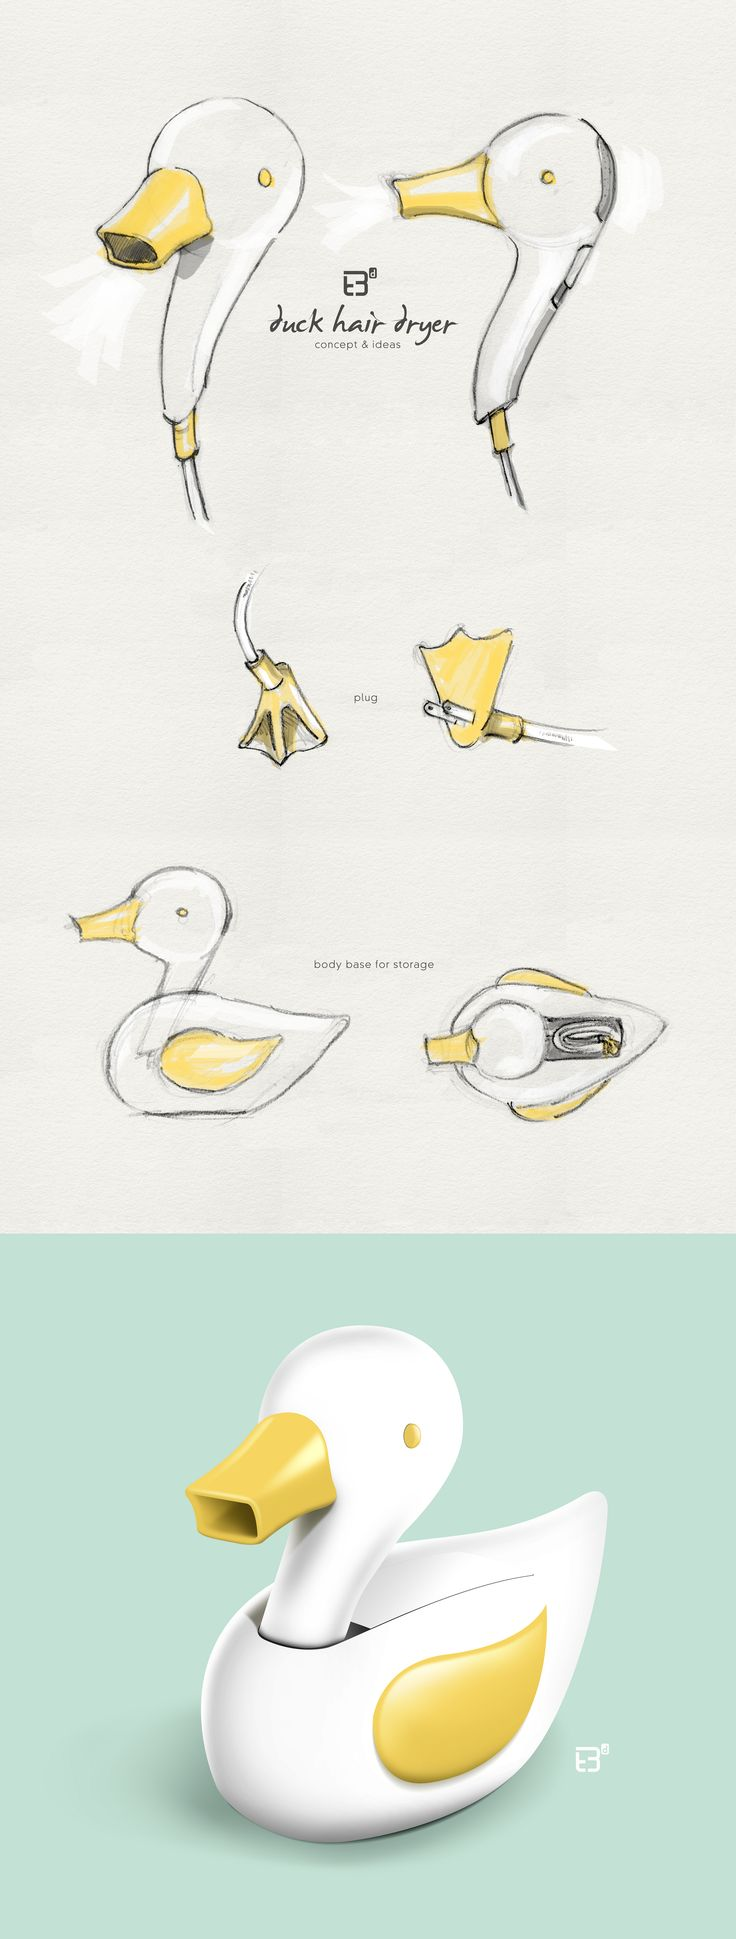 Duck Hair Dryer / Concept & Ideas (Product Design)